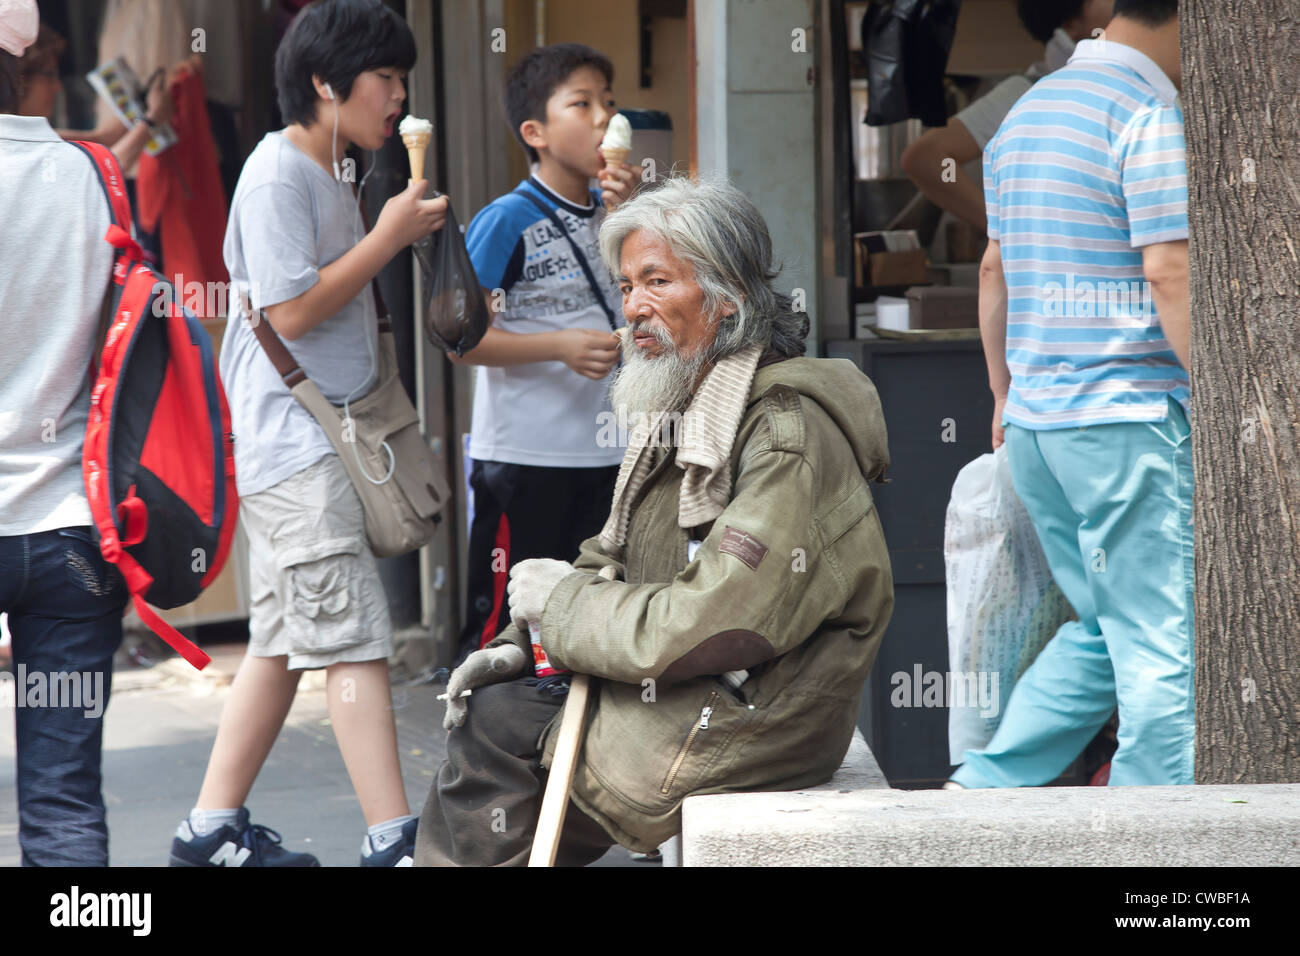 A homeless korean man wearing a heavy coat sits among all the people on a hot summer day. - Stock Image